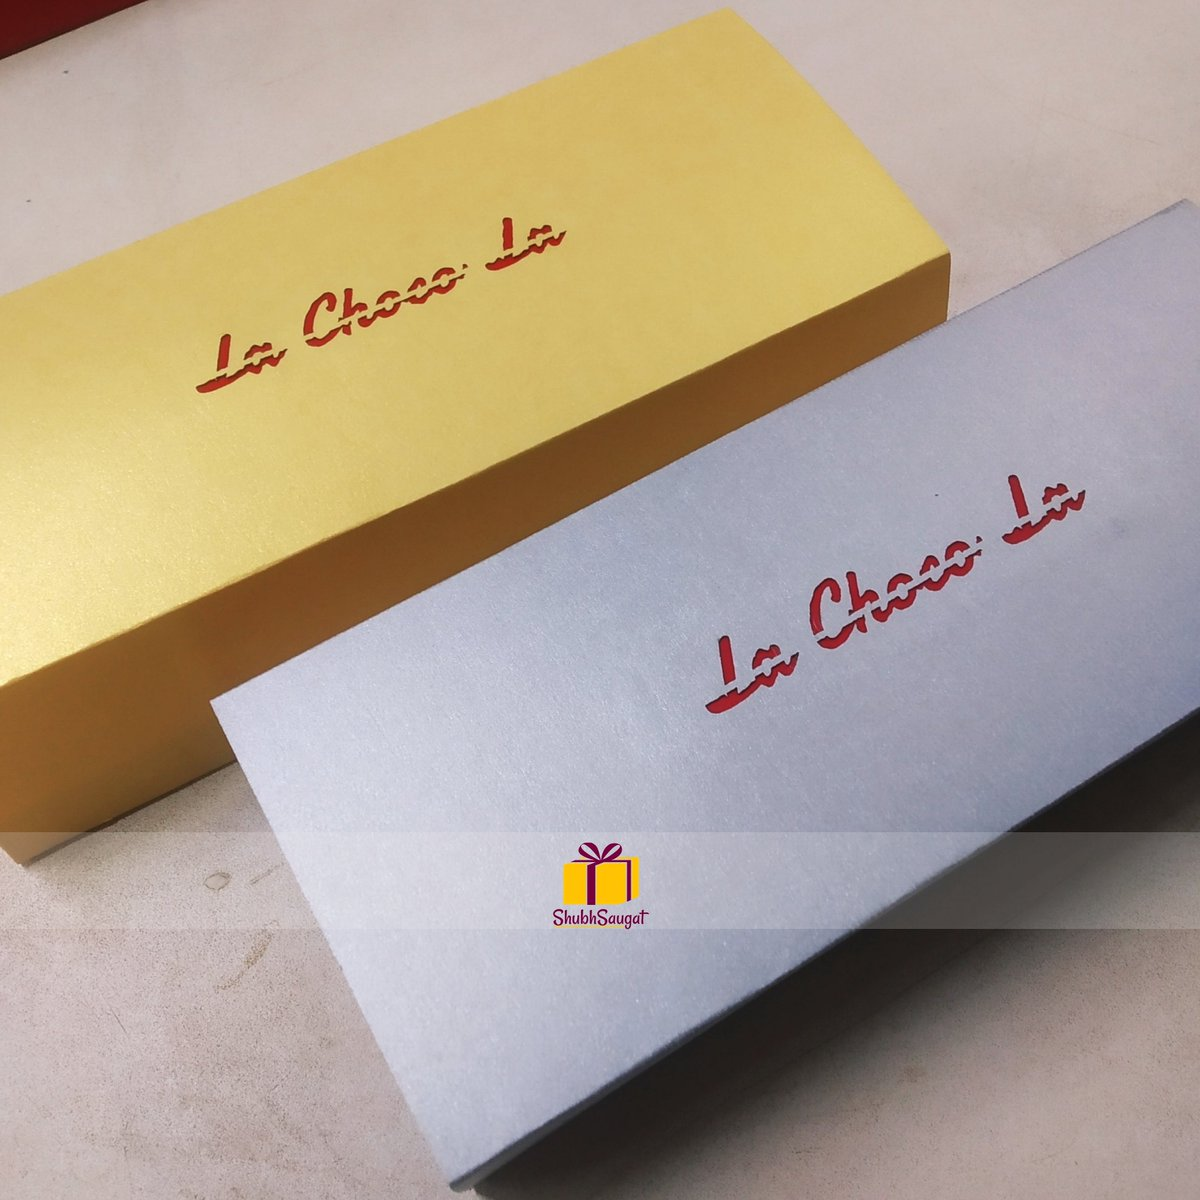 Wrap 🎁your handmade🌟 chocolates in this cute coloured paper box & tied 🎀in love💖. Available at   #chocolatebox #packaging🎁🎀 #photooftheday #picsart #memorablewedding #memes #handmadesoaps #happydiwali #hamper #festivevibes #fashionstyle